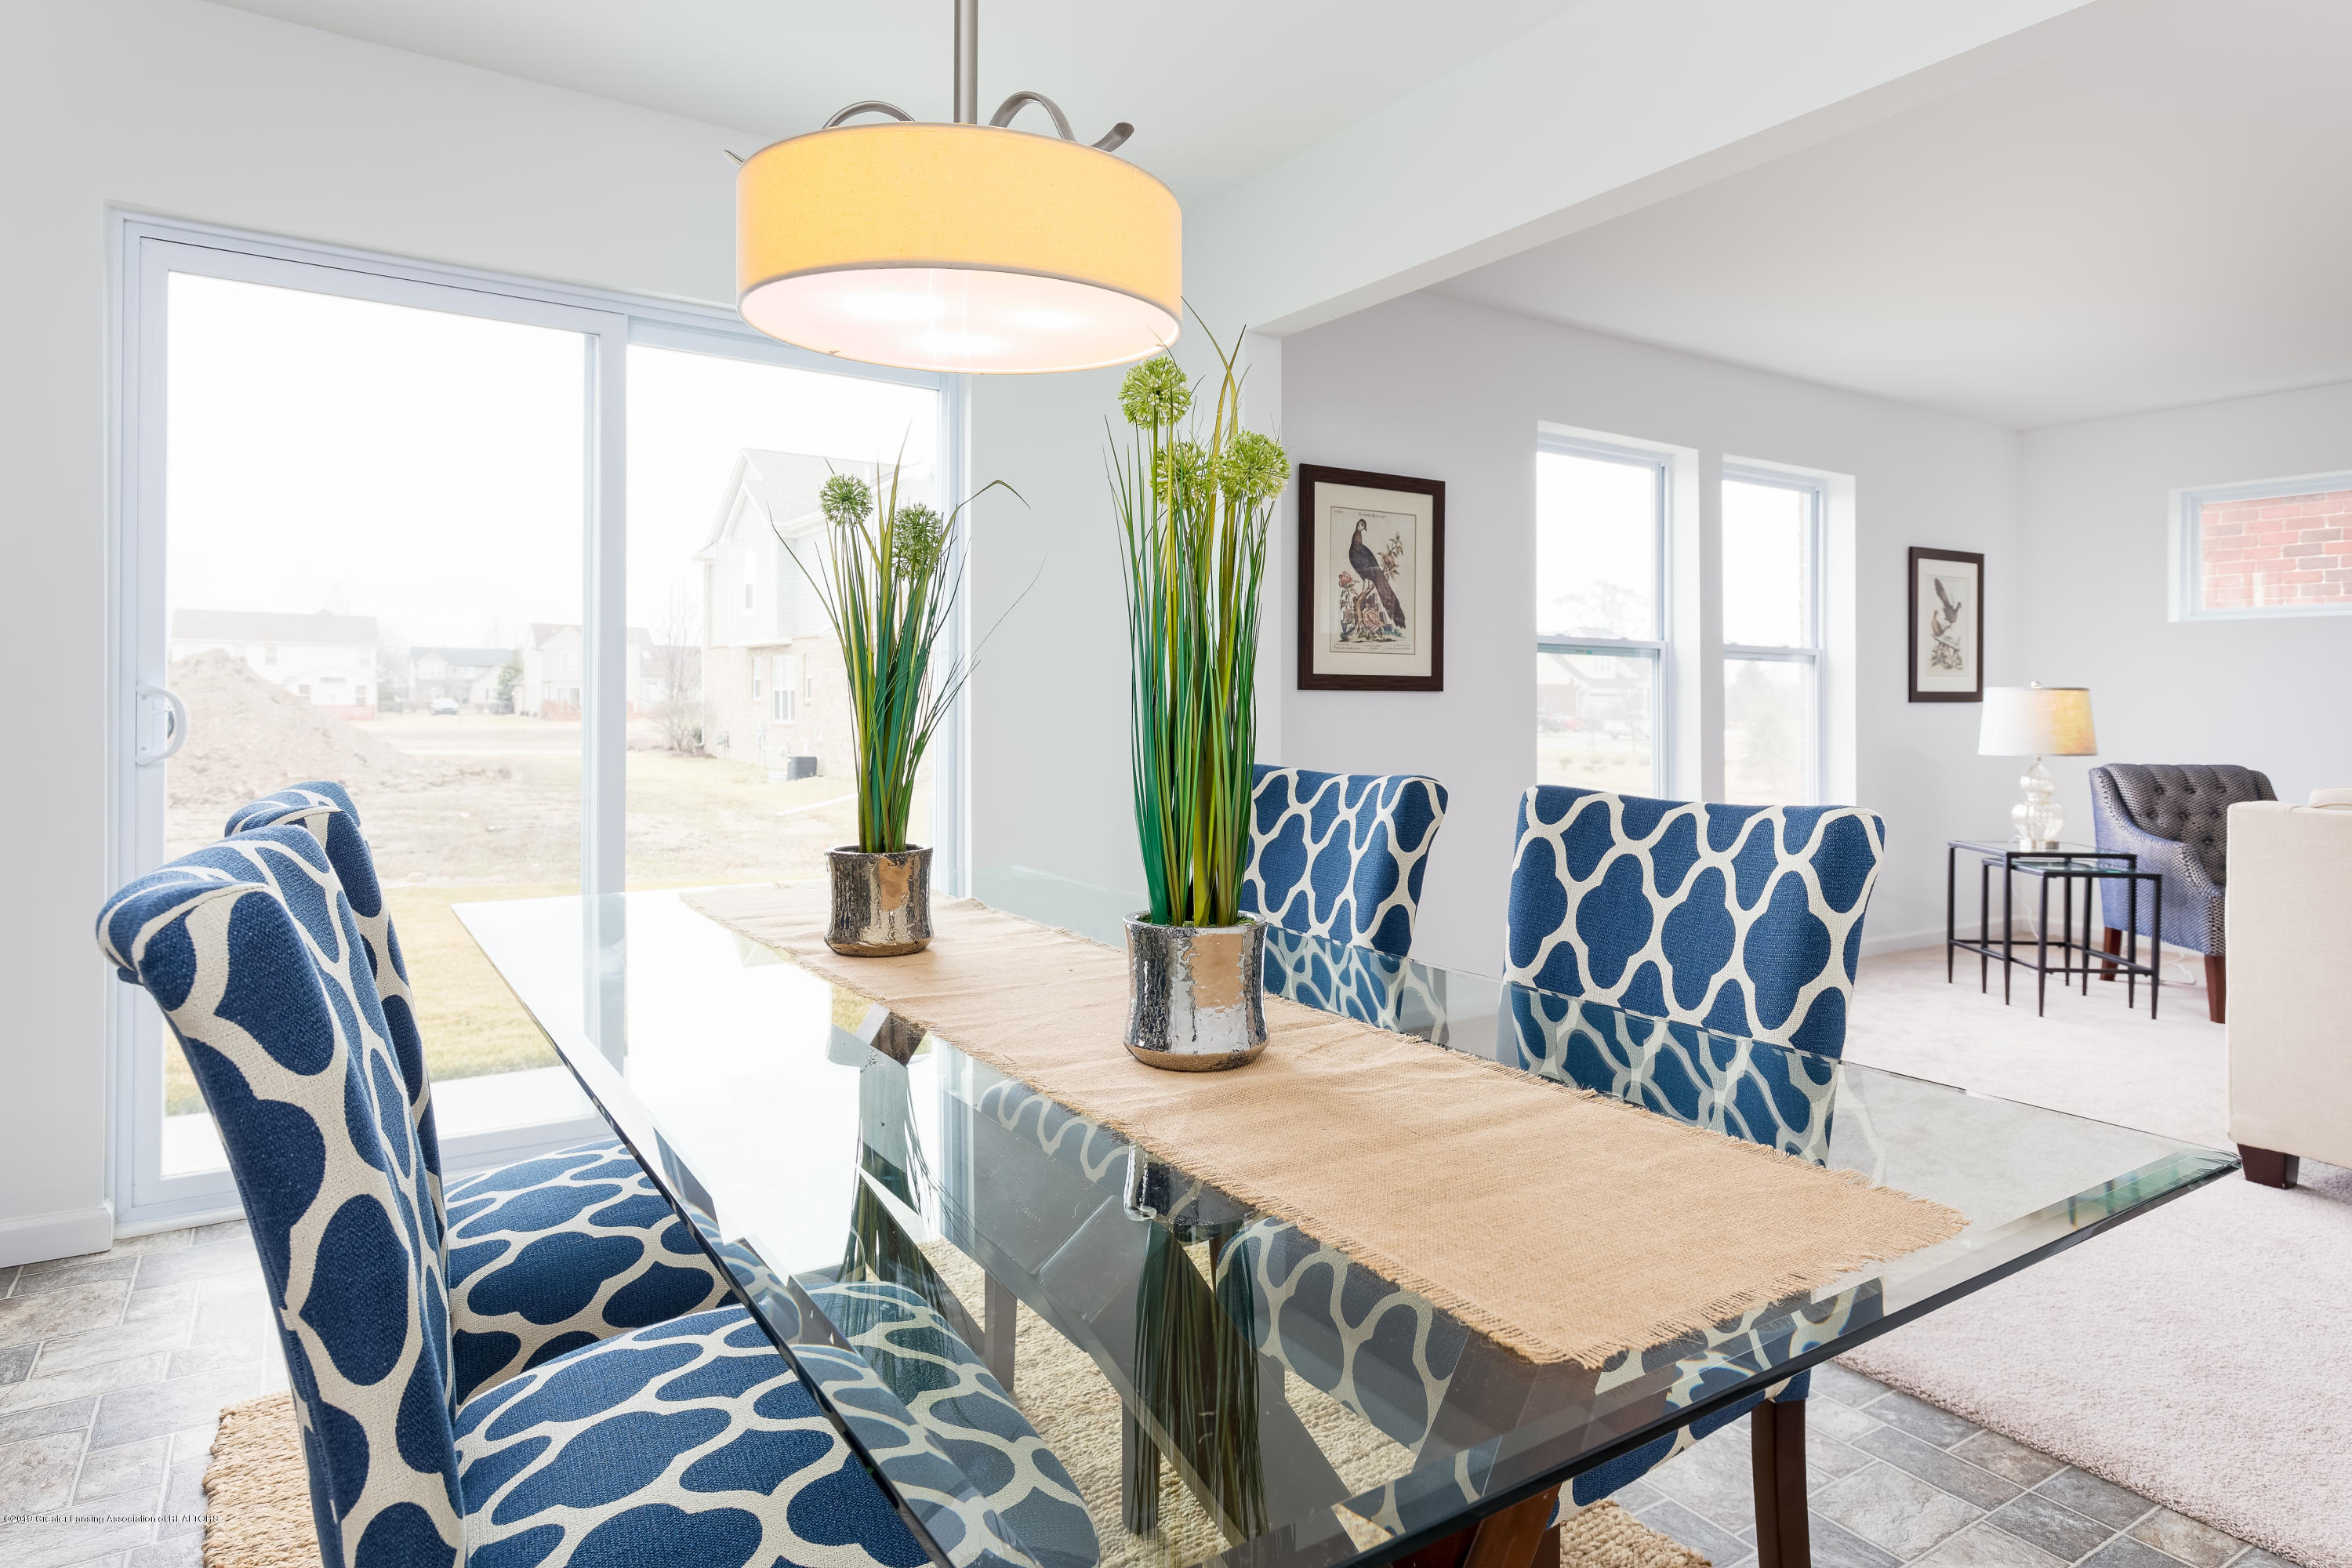 6482 Firefly Dr - Dining TSP077-E2070-Staged-17 - 5